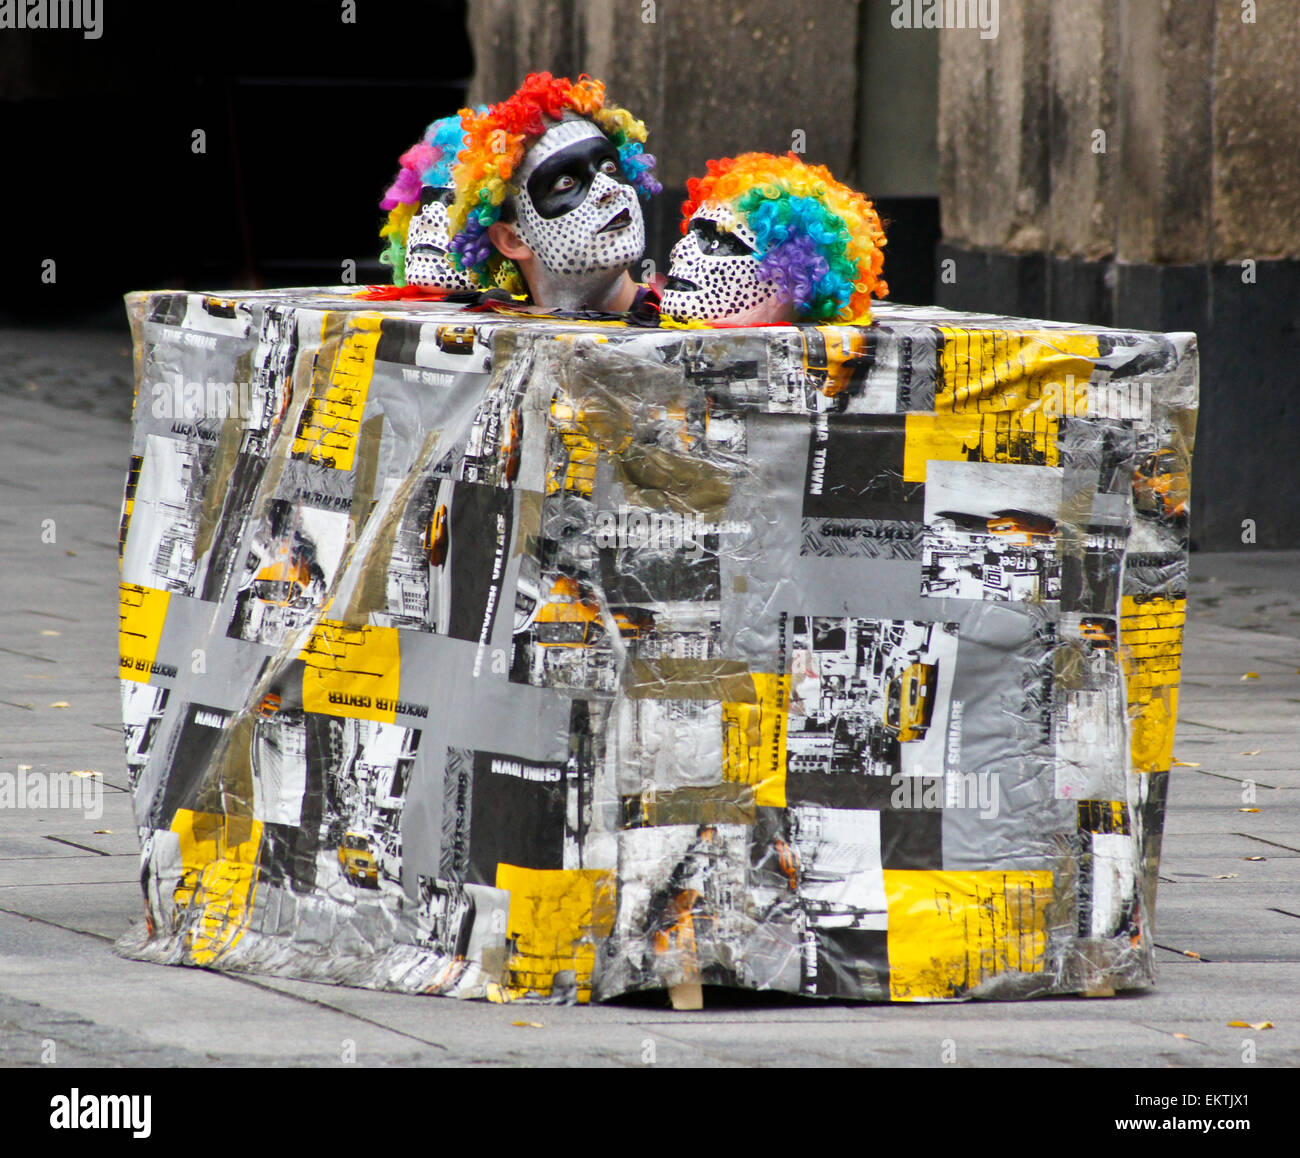 A mime artist and street entertainer in a box, Düsseldorf, Nordrhein-Westfalen, Germany - Stock Image